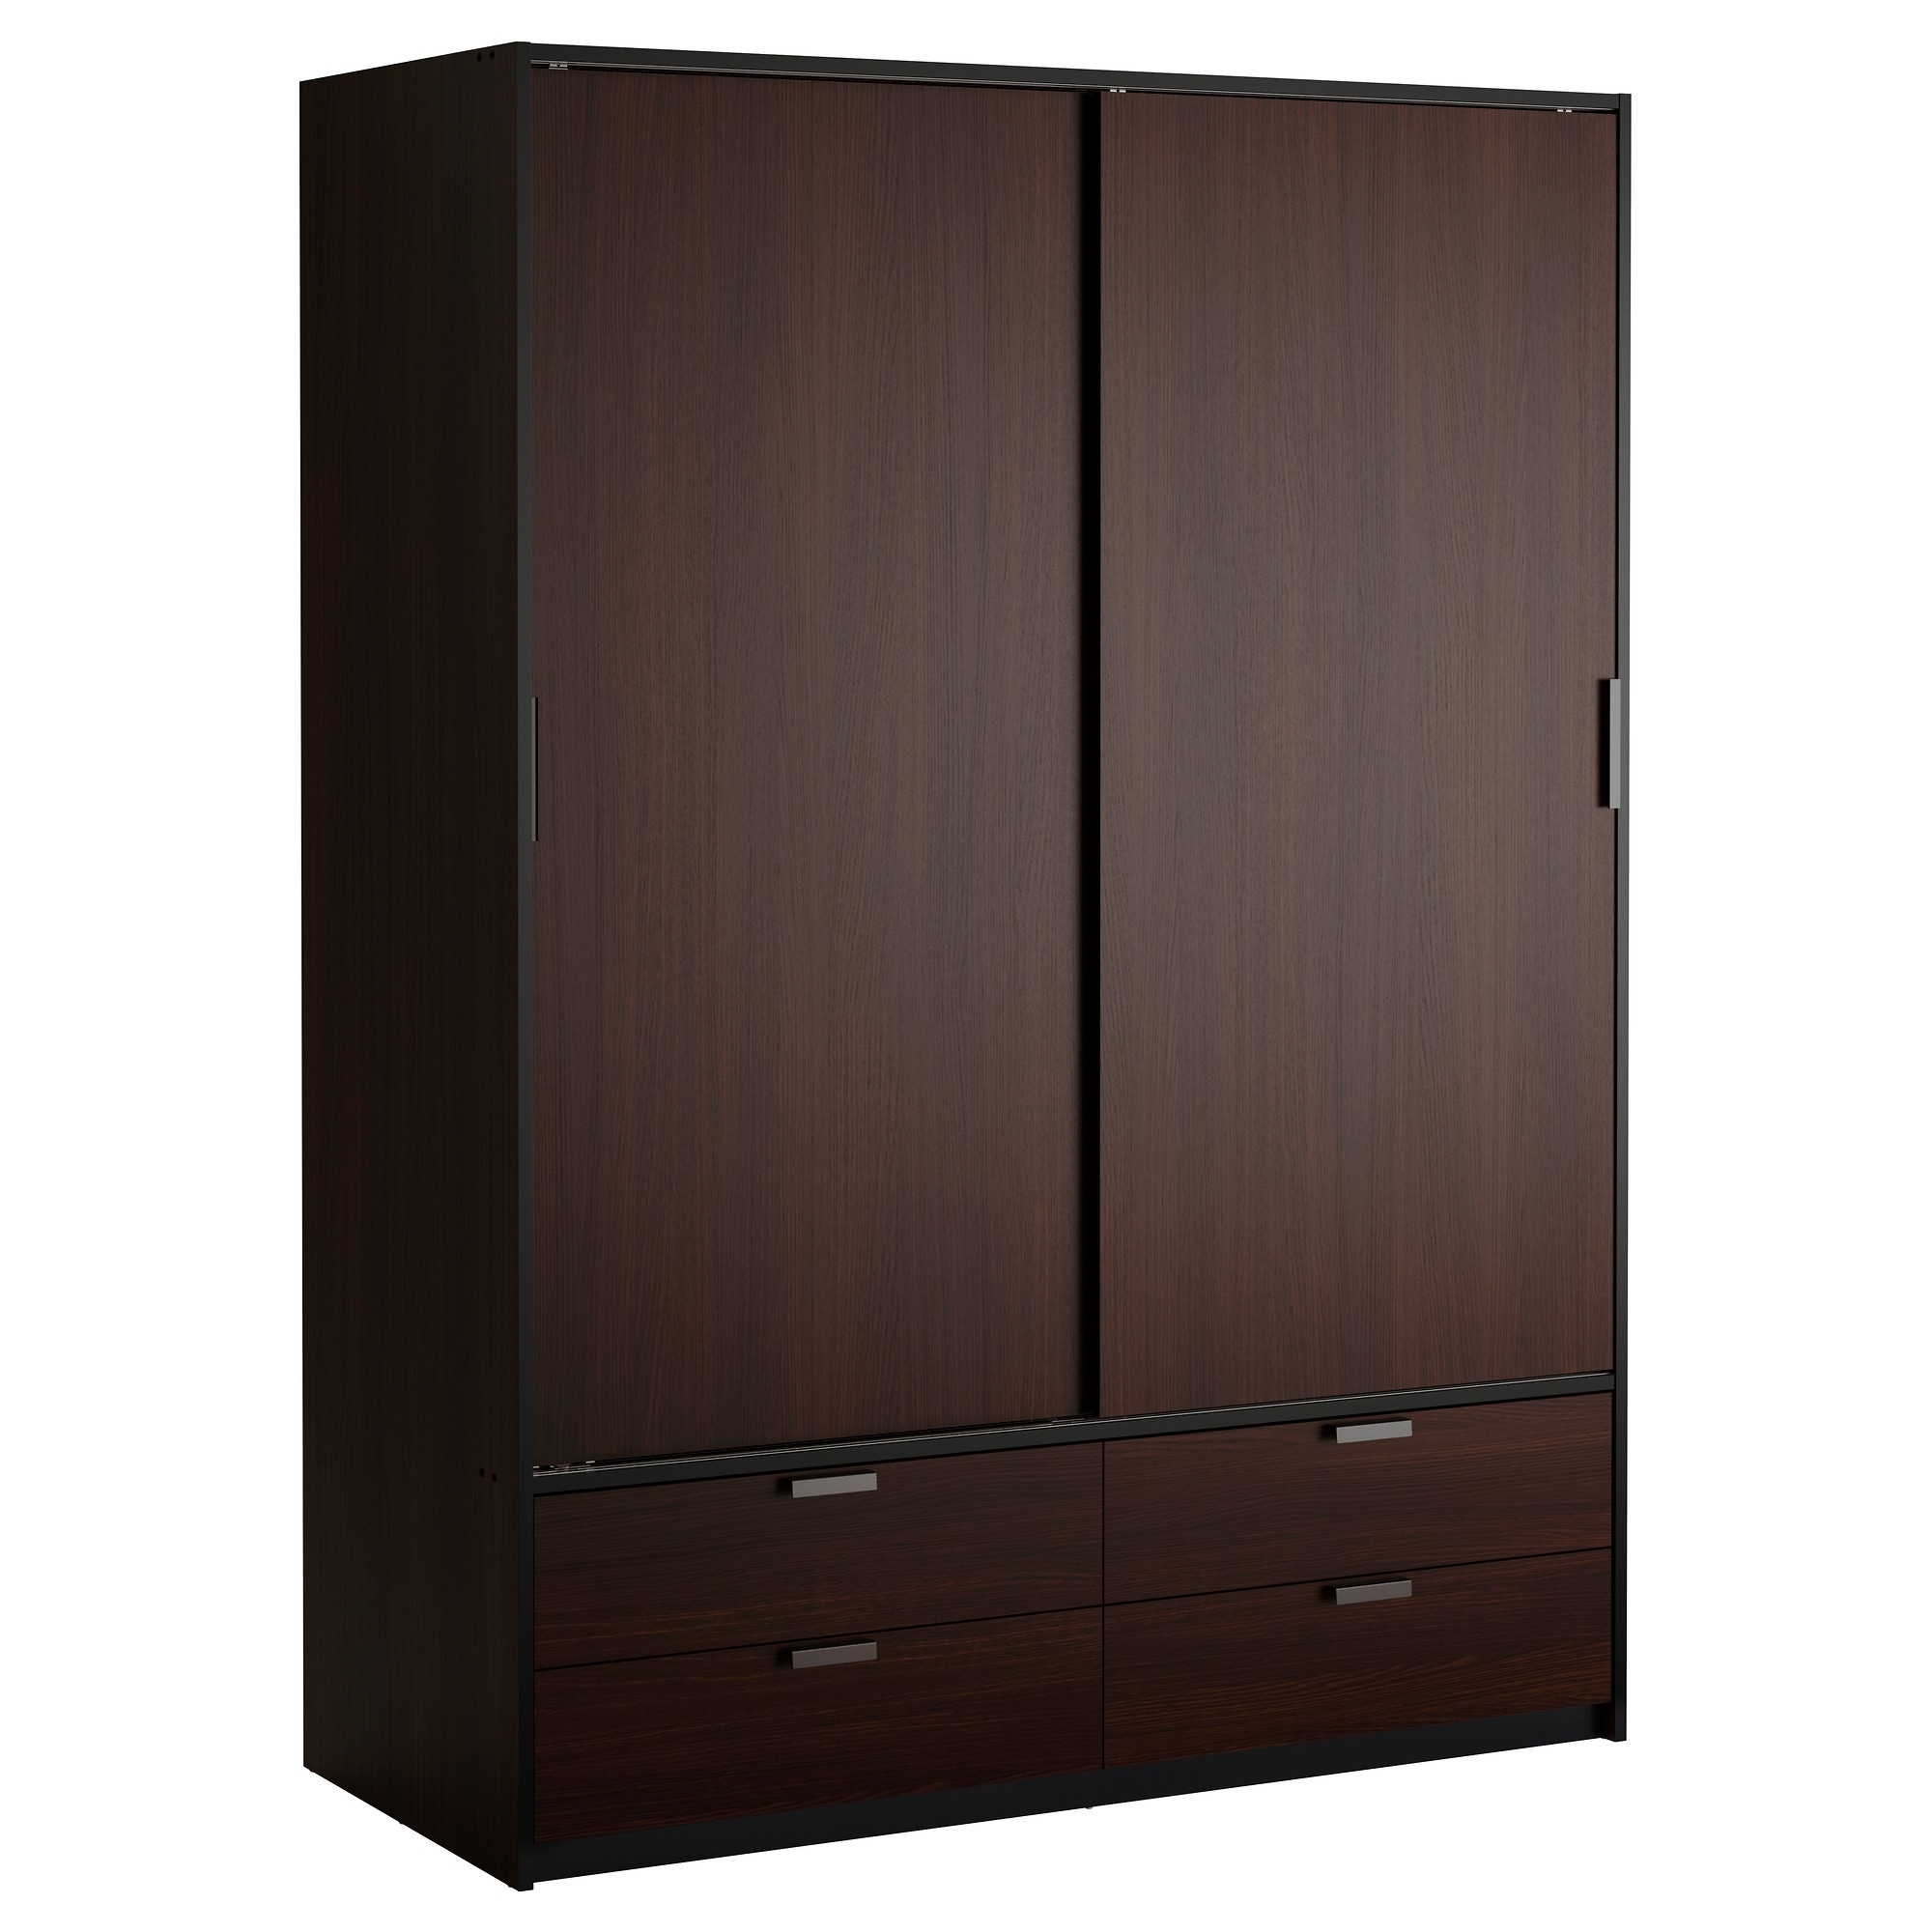 Widely Used Possible Wardrobe Solution – Trysil Wardrobe W Sliding Doors/4 Pertaining To Dark Brown Wardrobes (View 4 of 15)